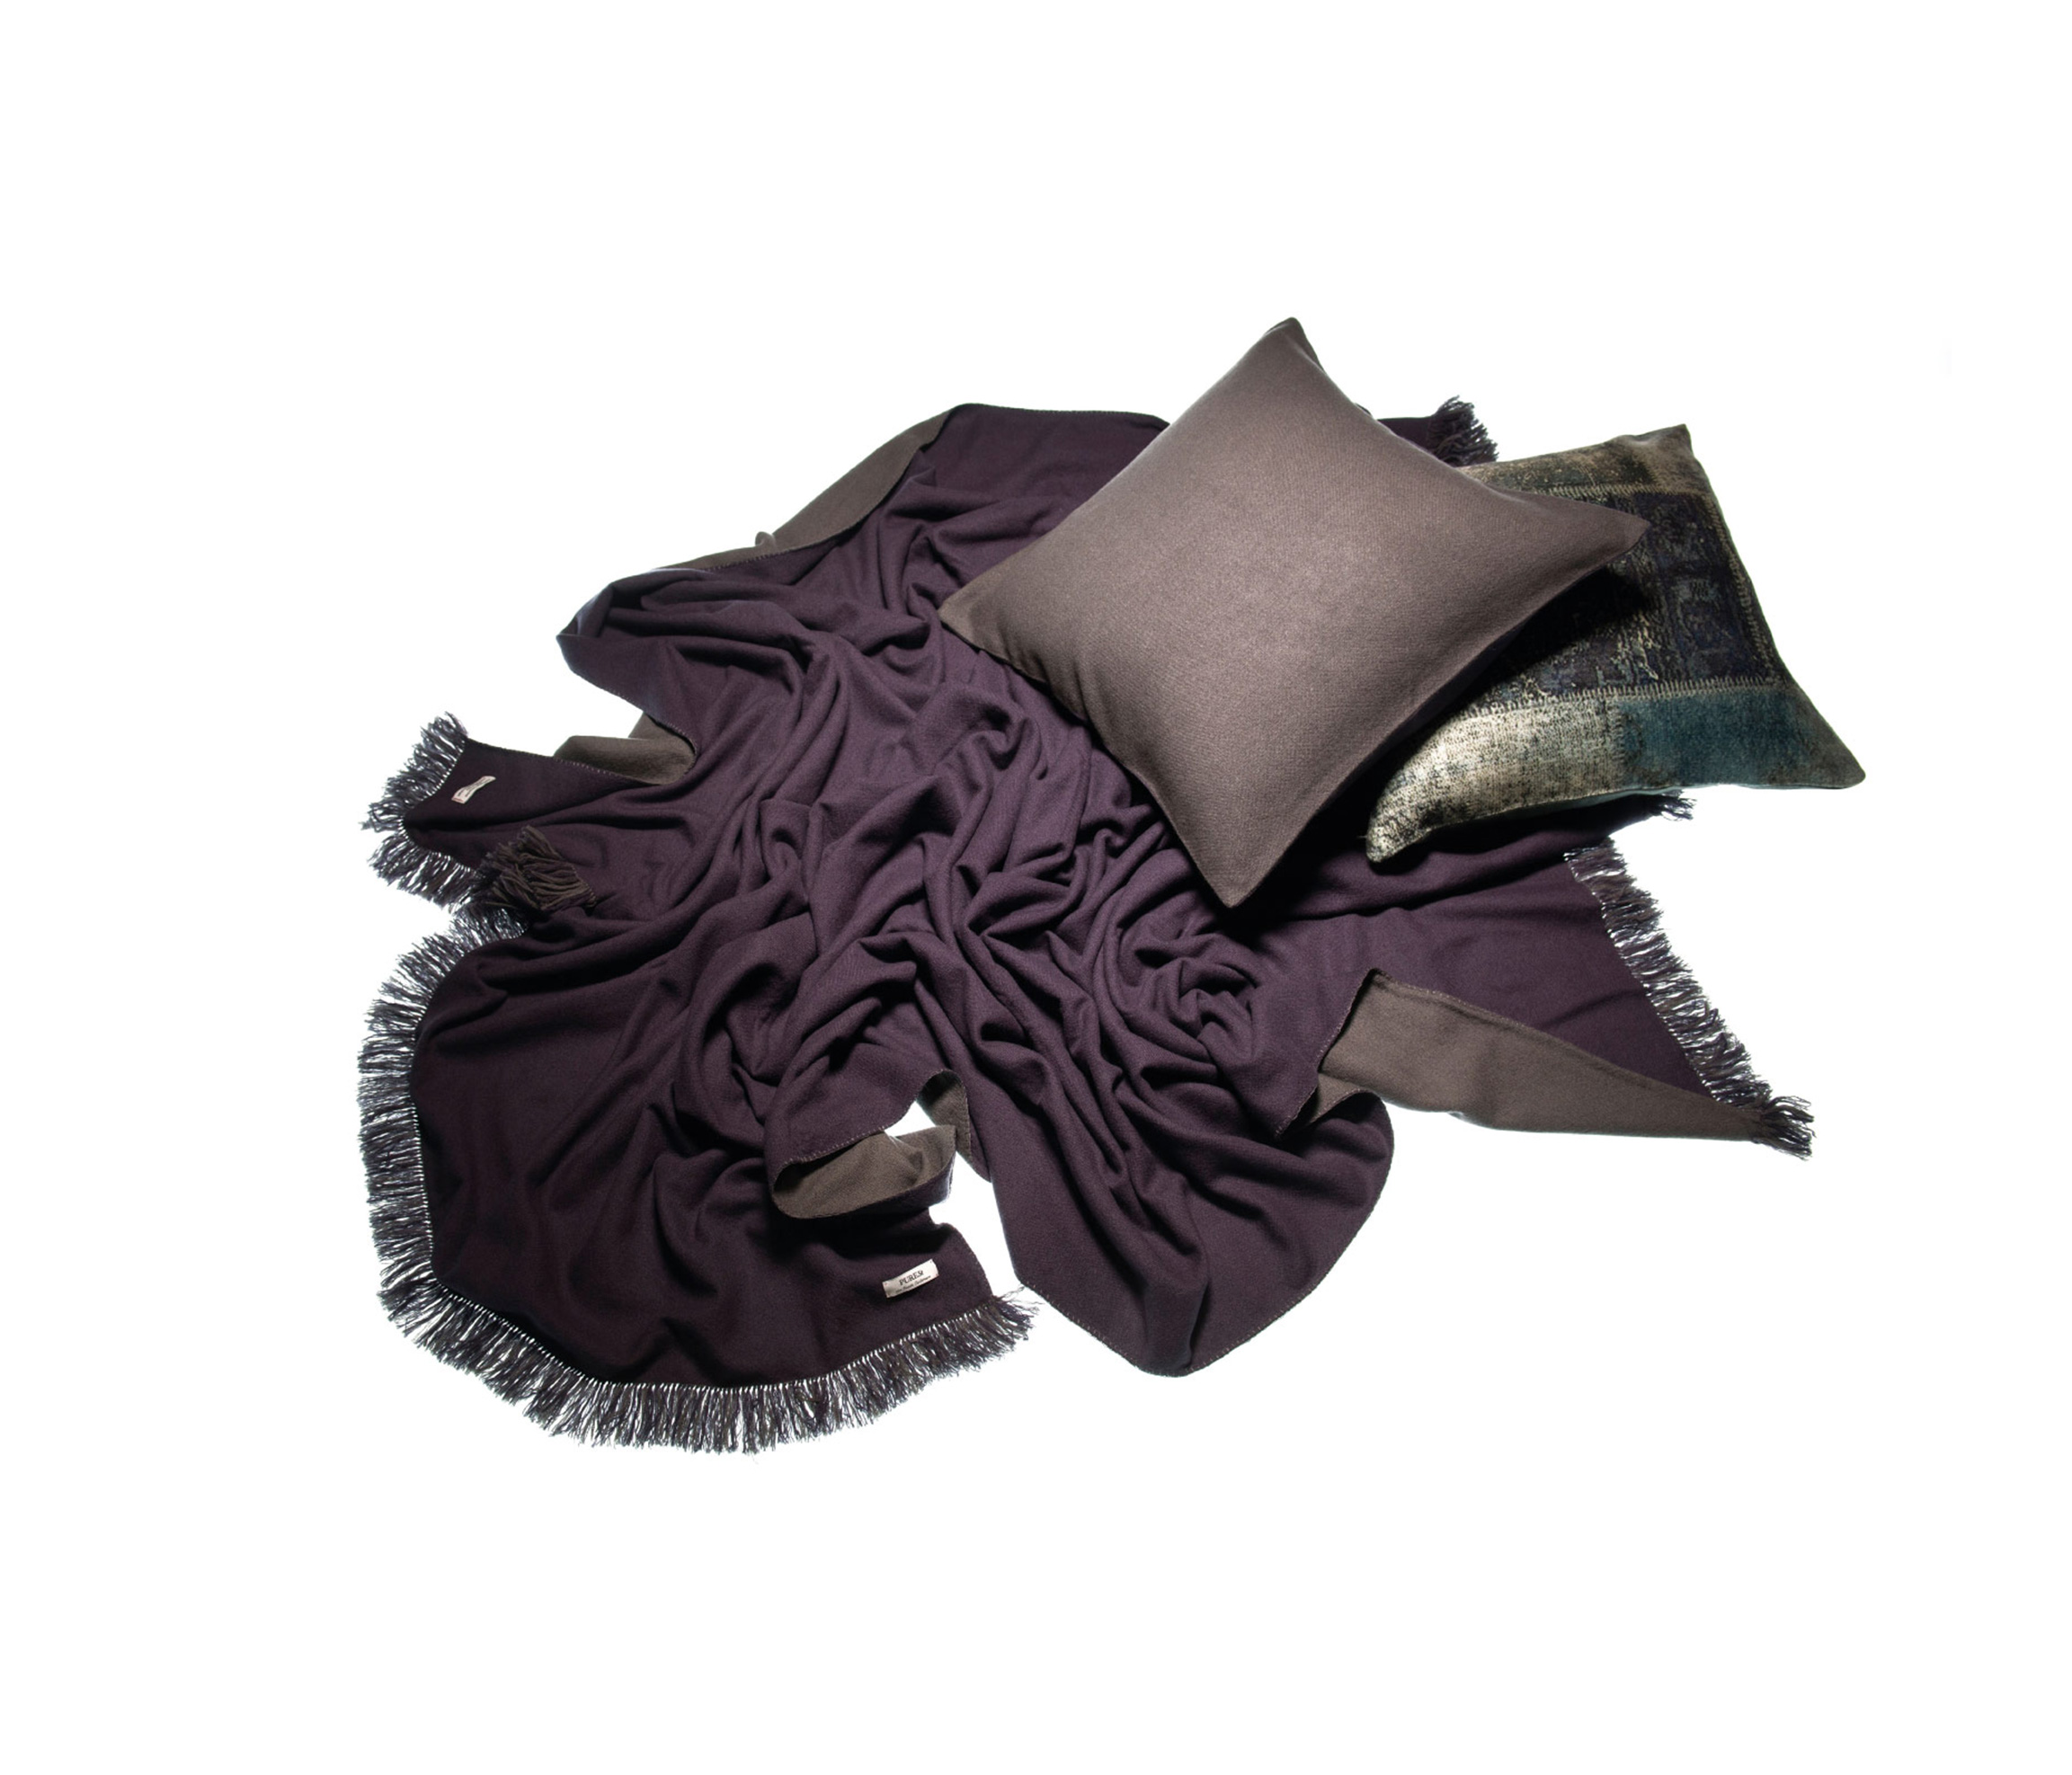 Home double Blanket and Pillows